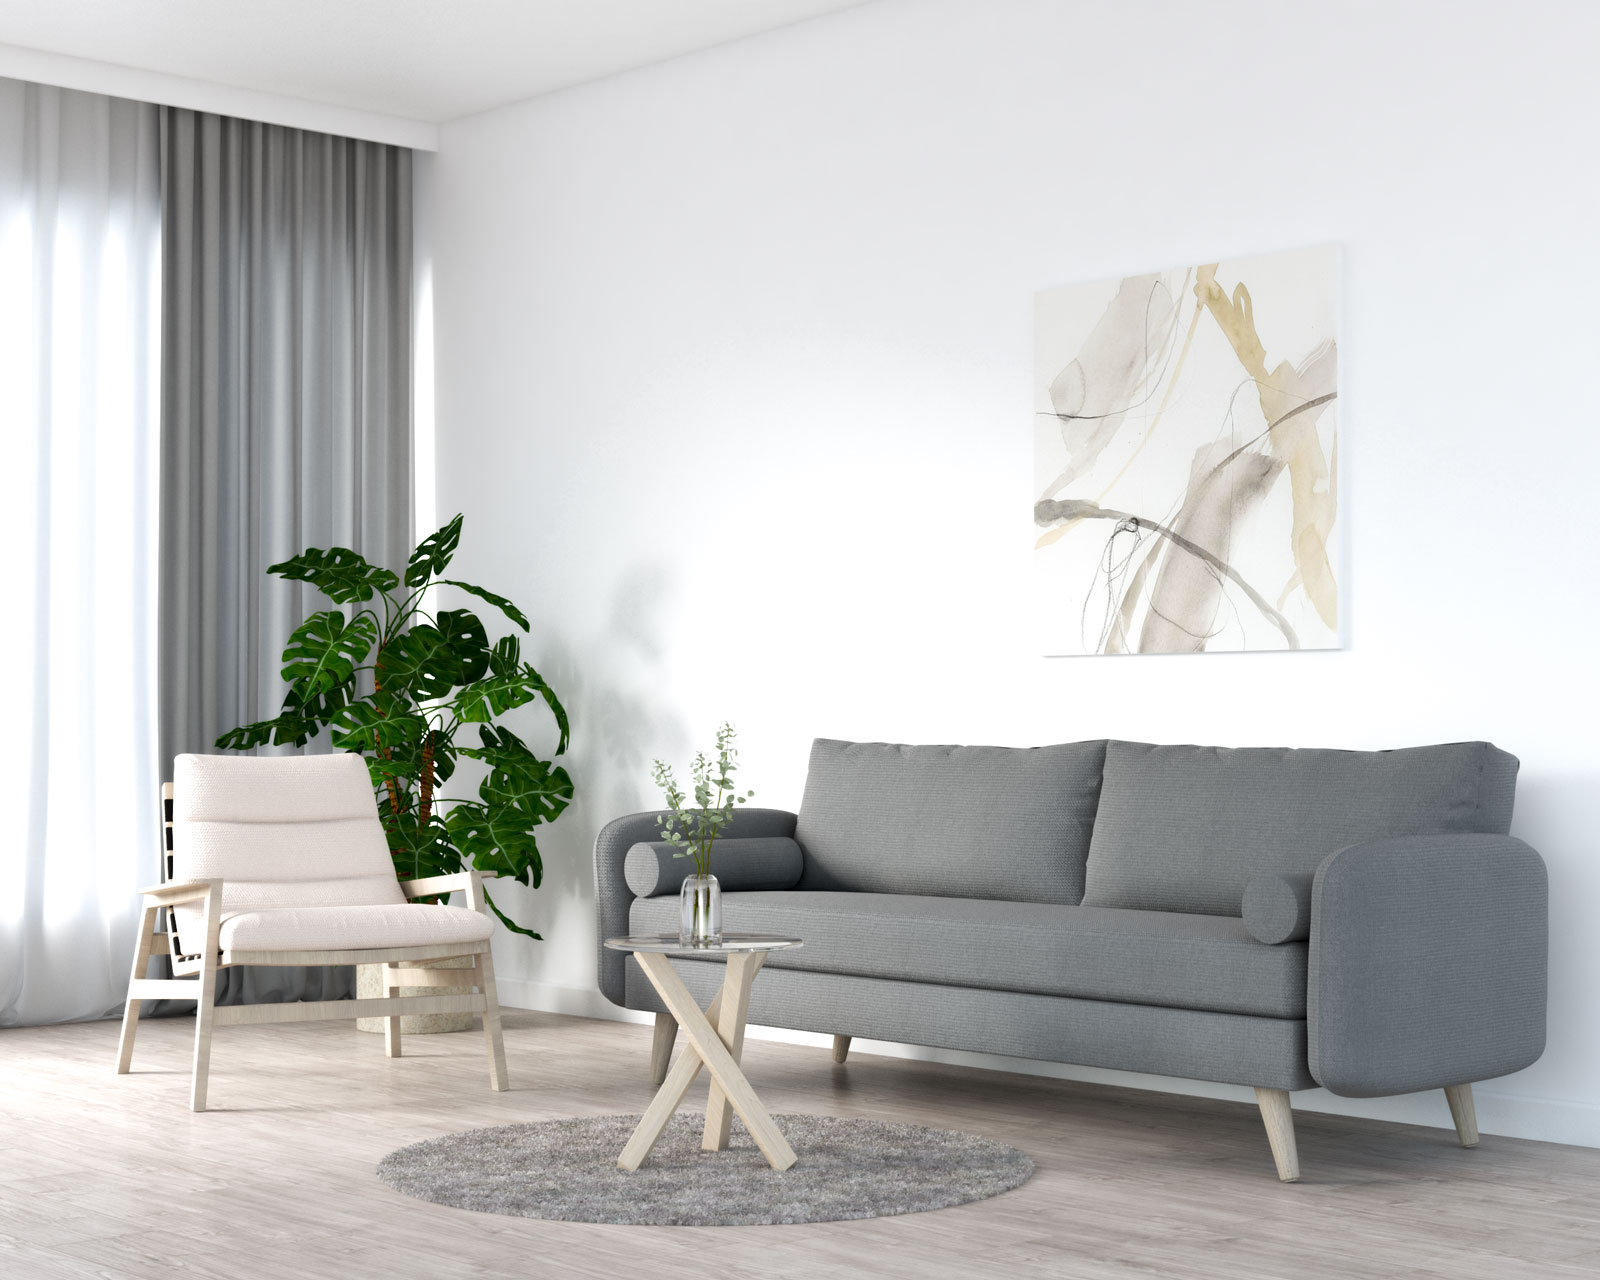 Beige chair with grey couch